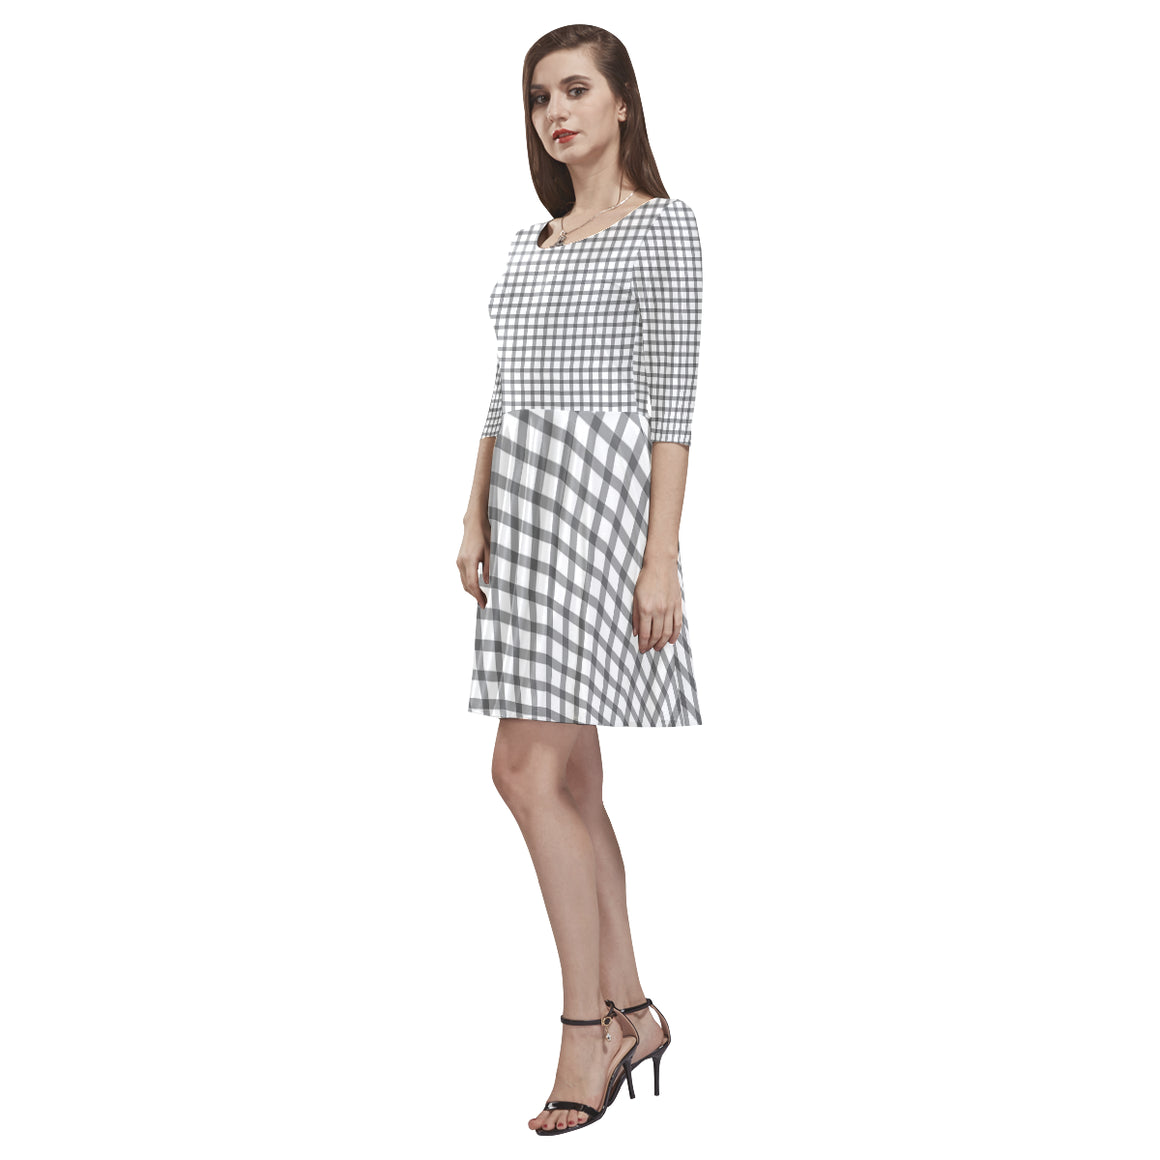 Mizo Black White Stripes Tethys Half-Sleeve Skater Dress - I Am A Dreamer